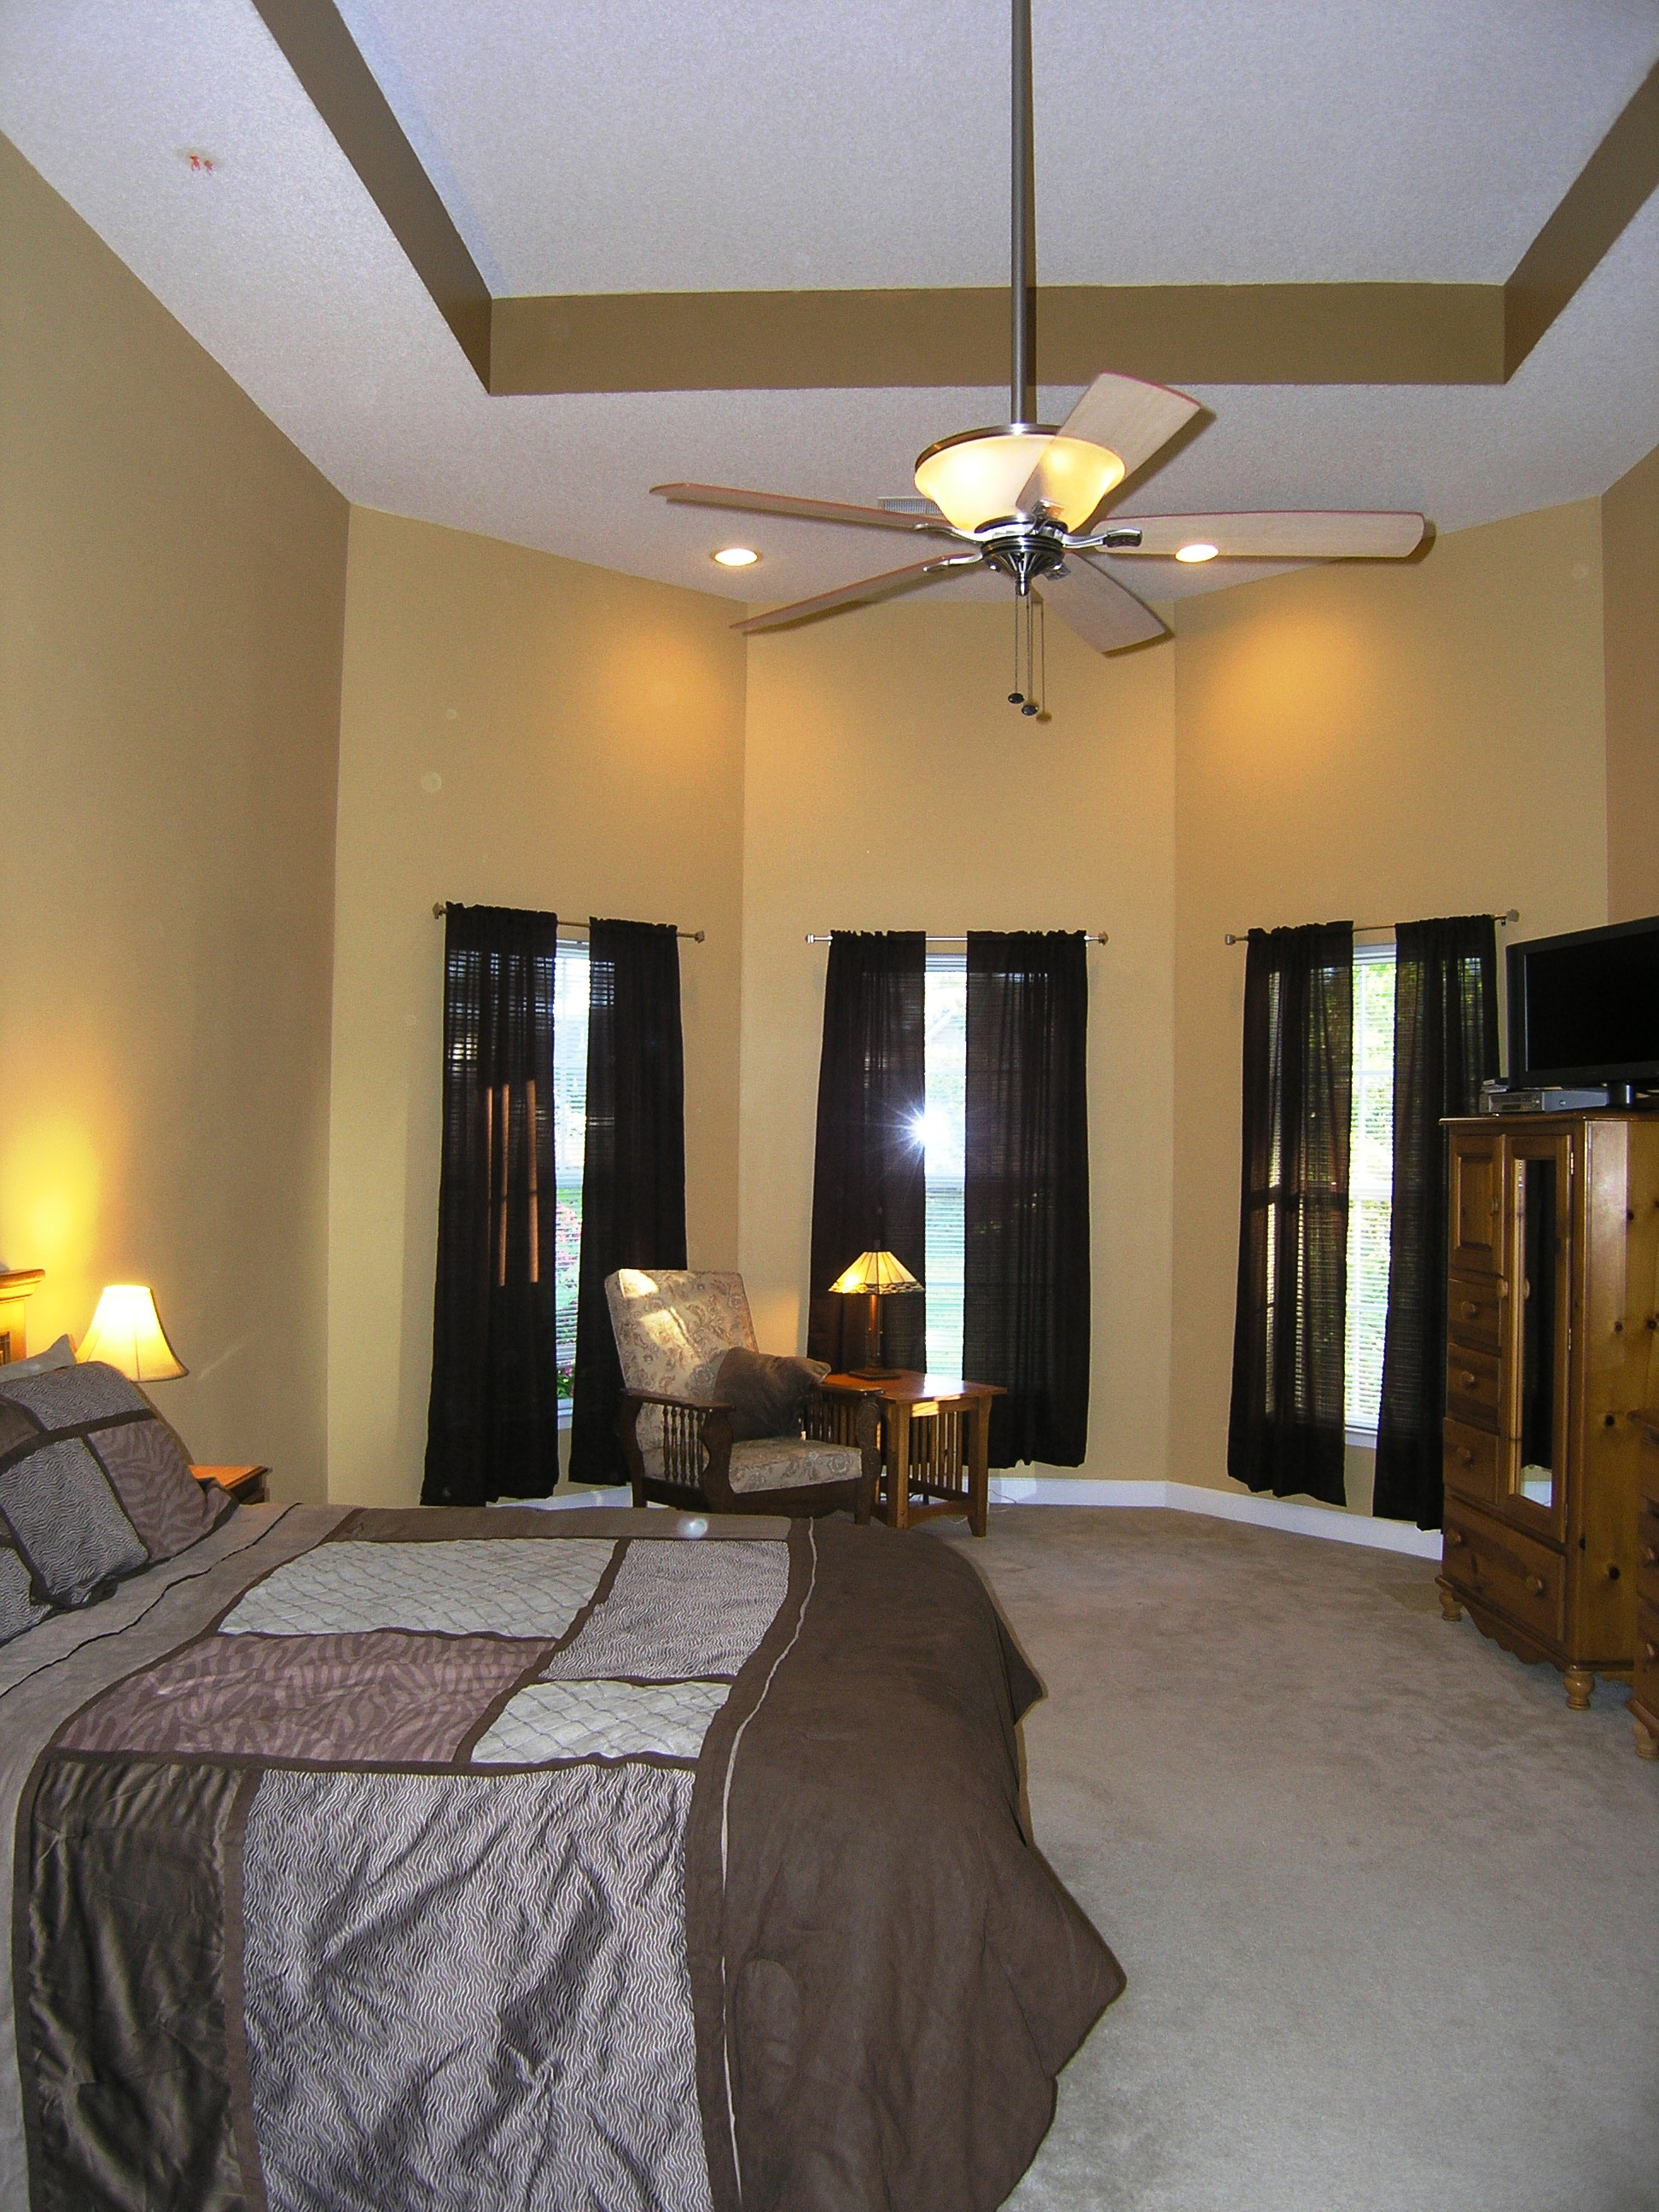 The master suite on the main floor is huge with 2 walk in closets jacuzzi tub tiled shower for 2 and a water closet